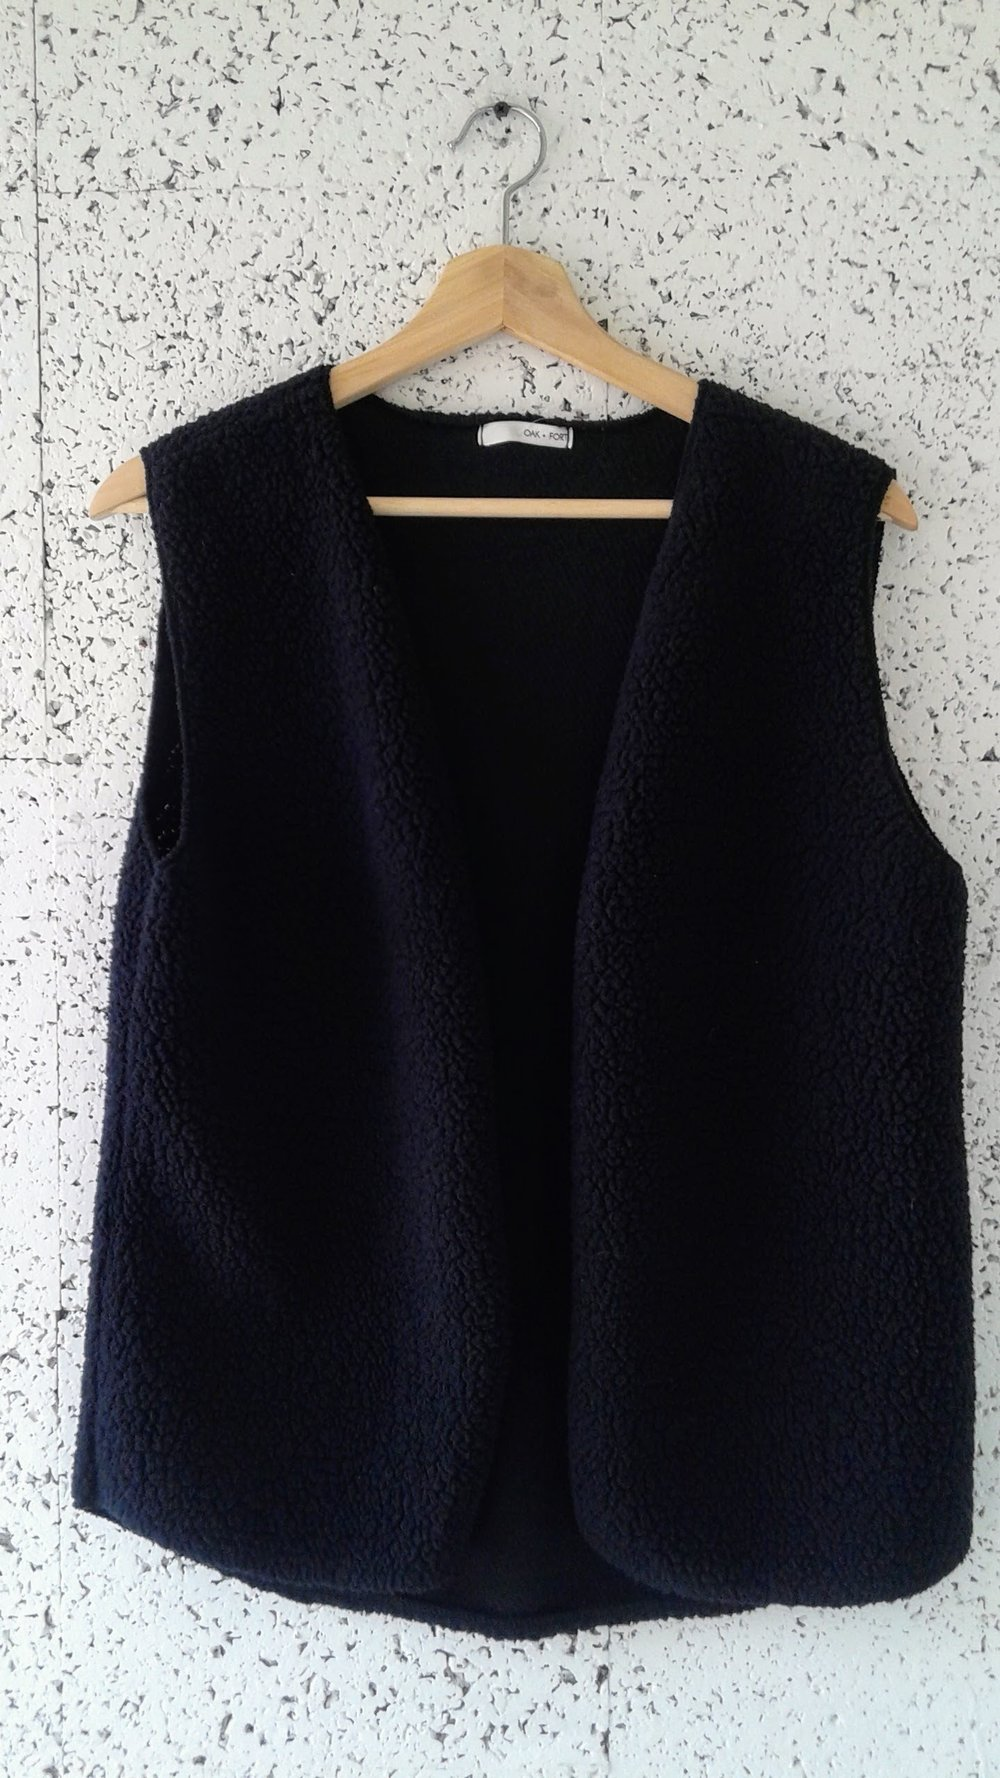 Oak + Fort vest; Size S, $38